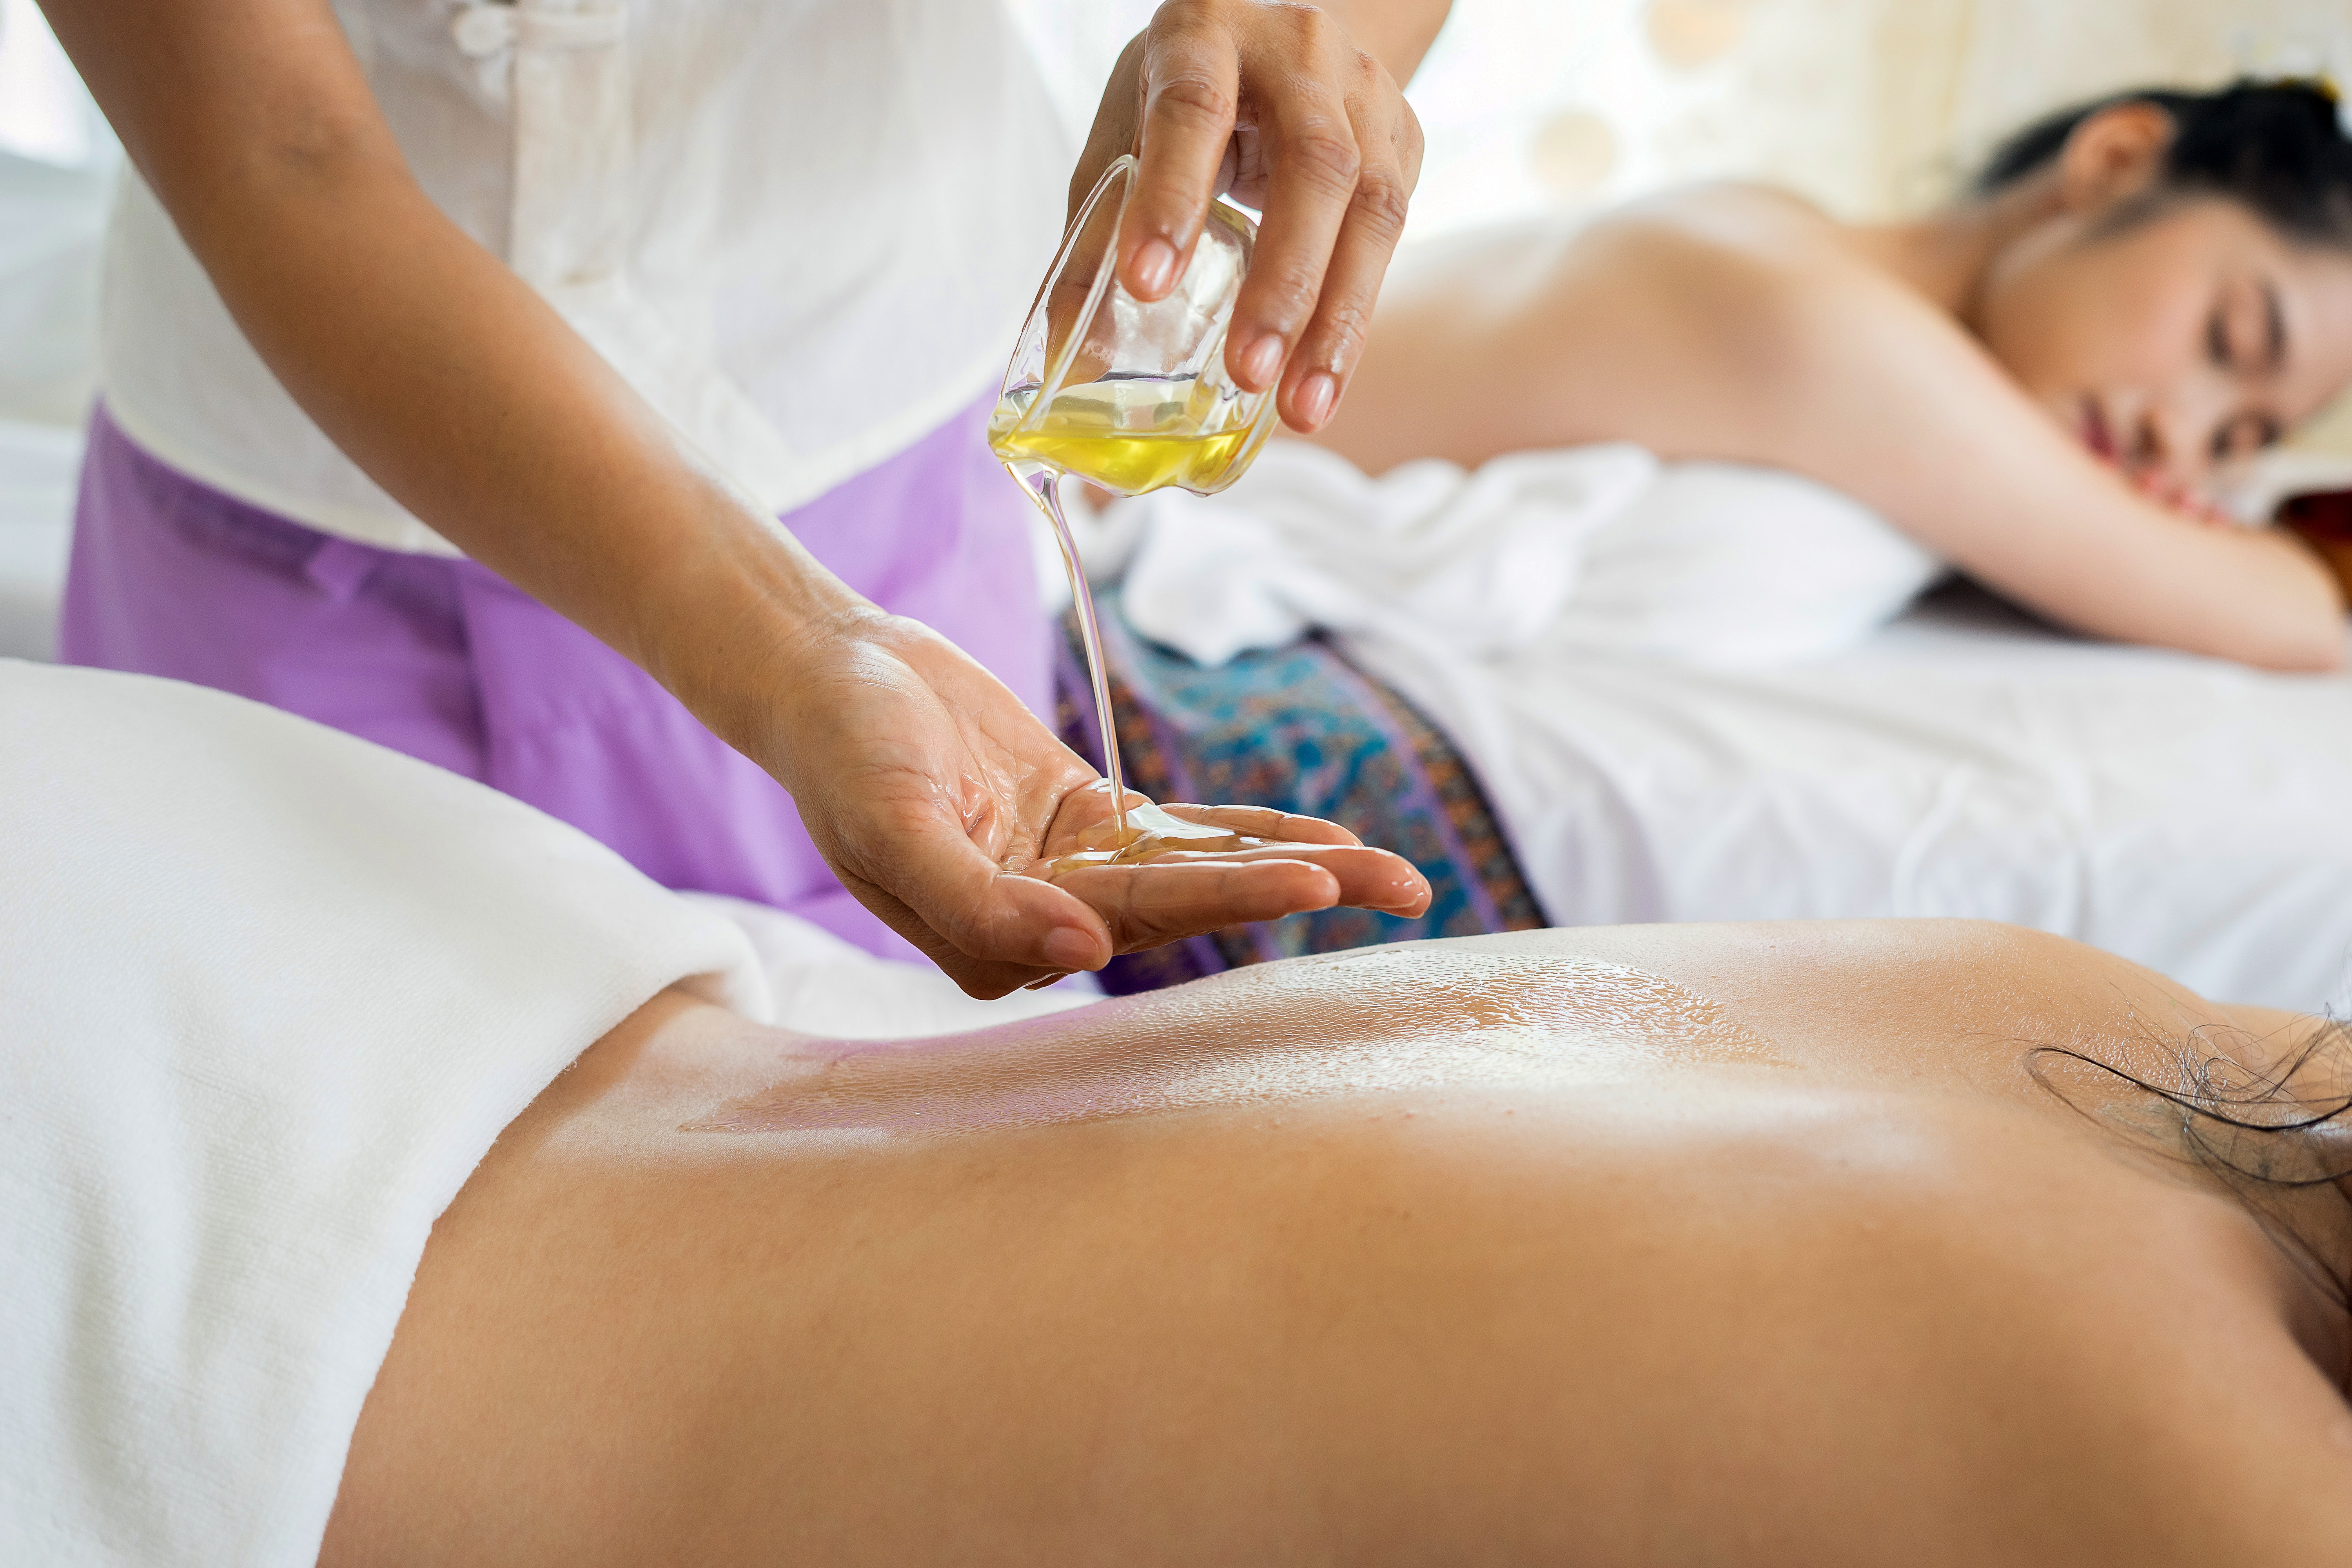 Activities of saunas, sunbeds and massage salons and other services related to physical well-being in Jõgeva